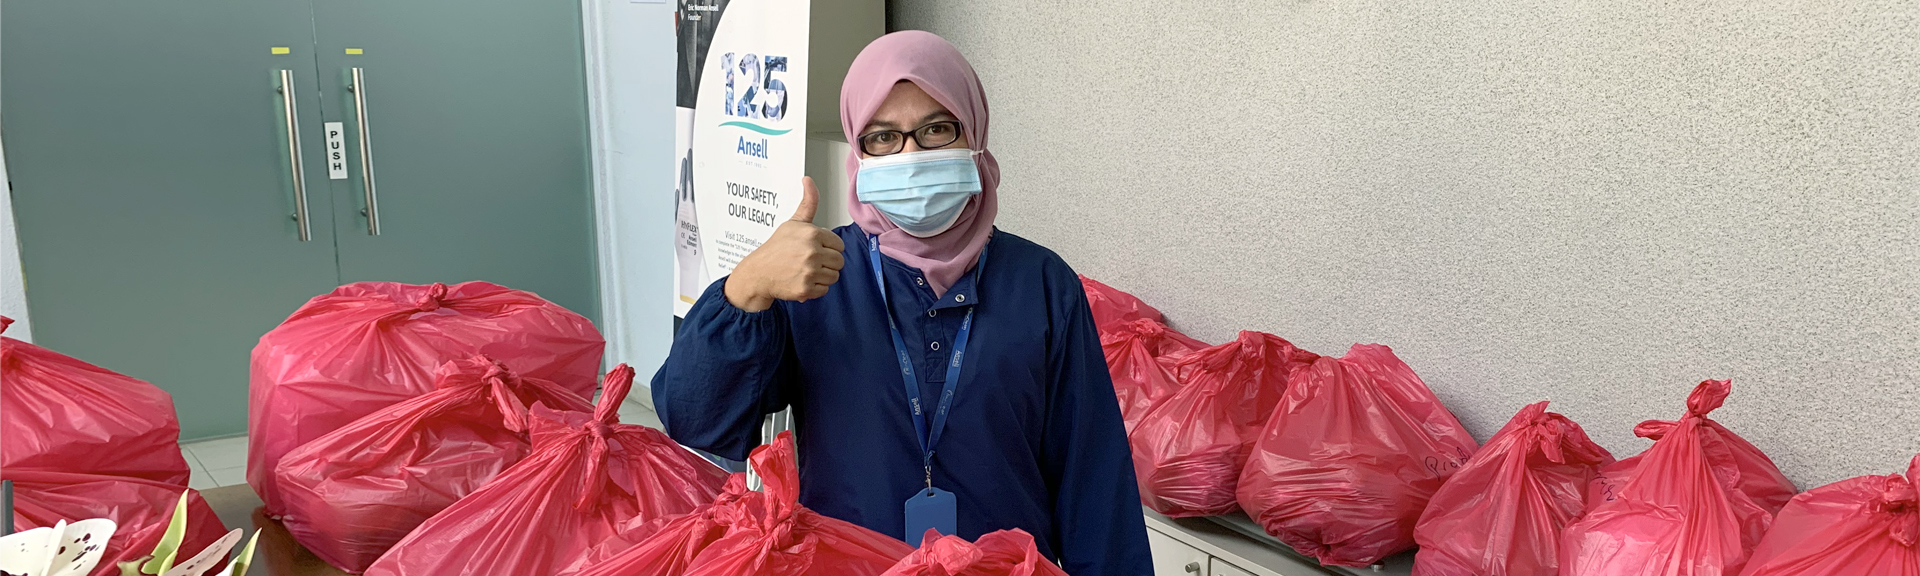 ansell employees in masks donating products to a healthcare center